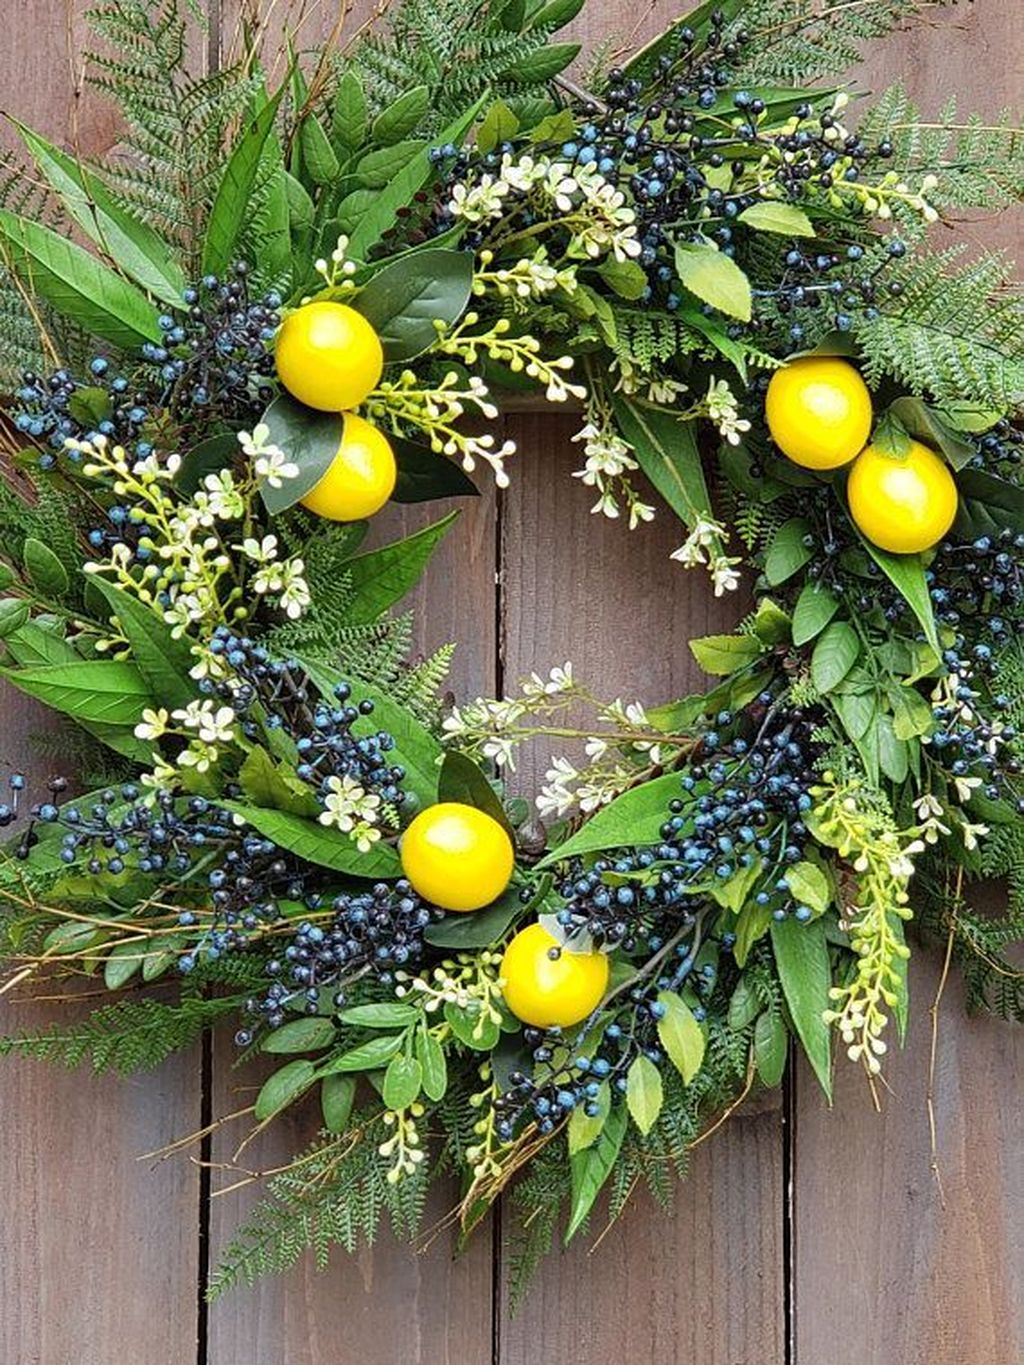 Inspiring Summer Wreath Design Ideas You Should Copy 20